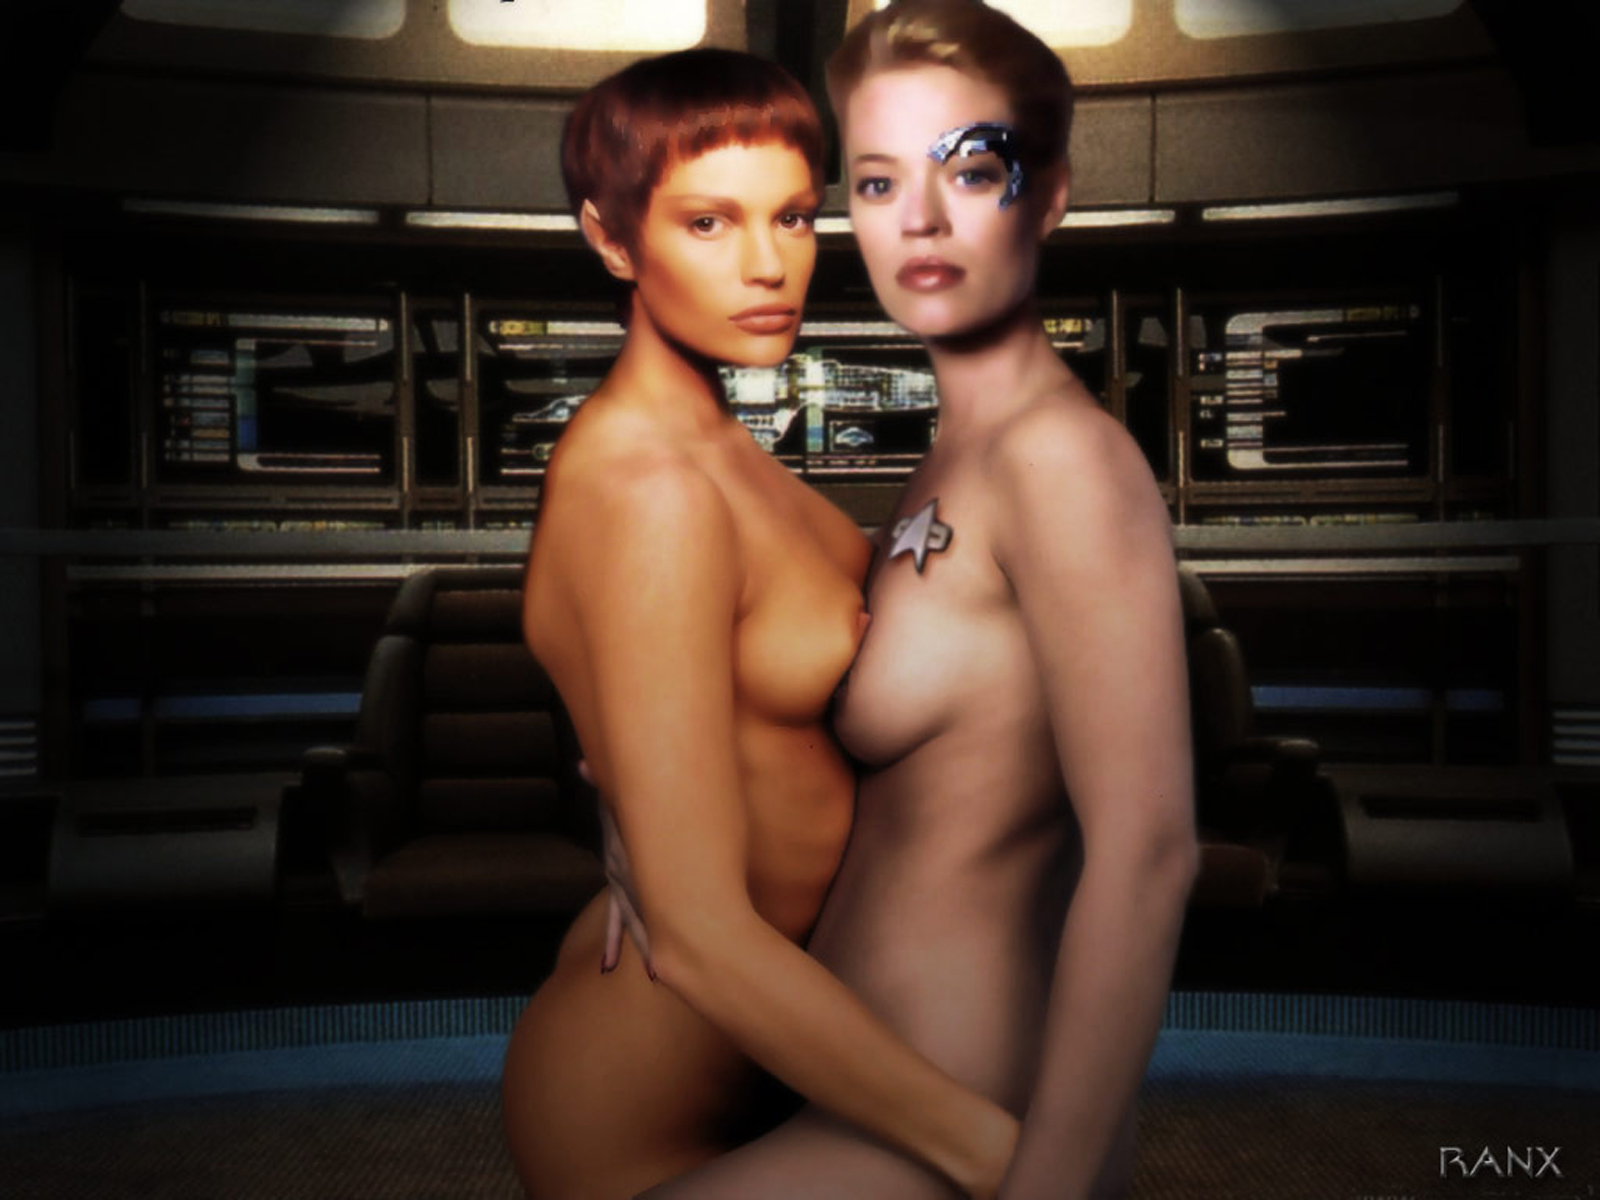 The Sexiest Star Trek Celebrities - Nude Scene